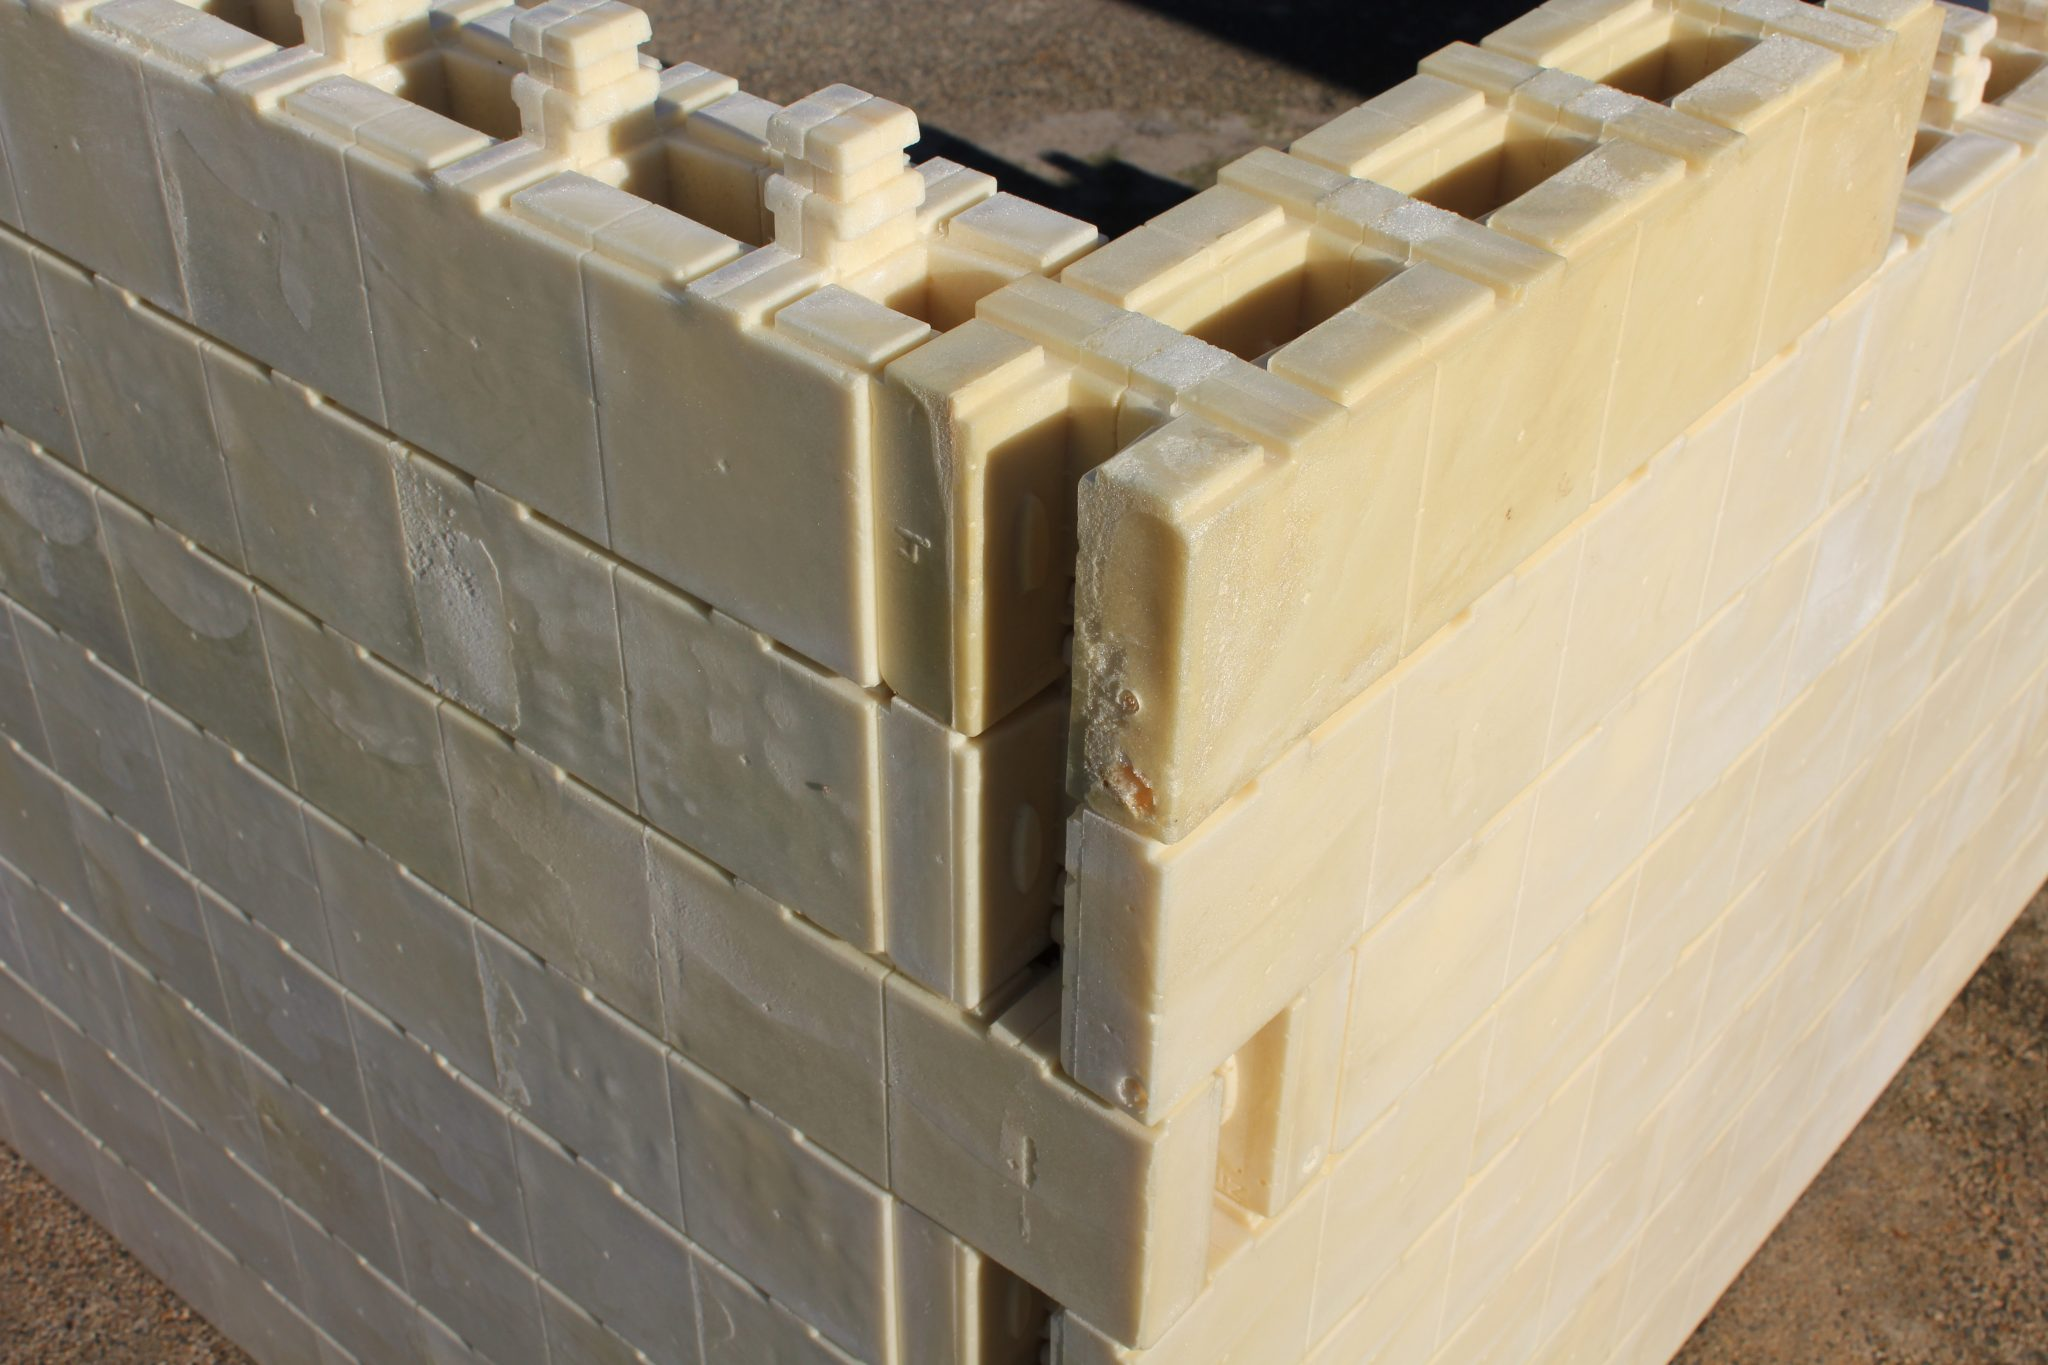 modular building blocks that fully interlock on placement